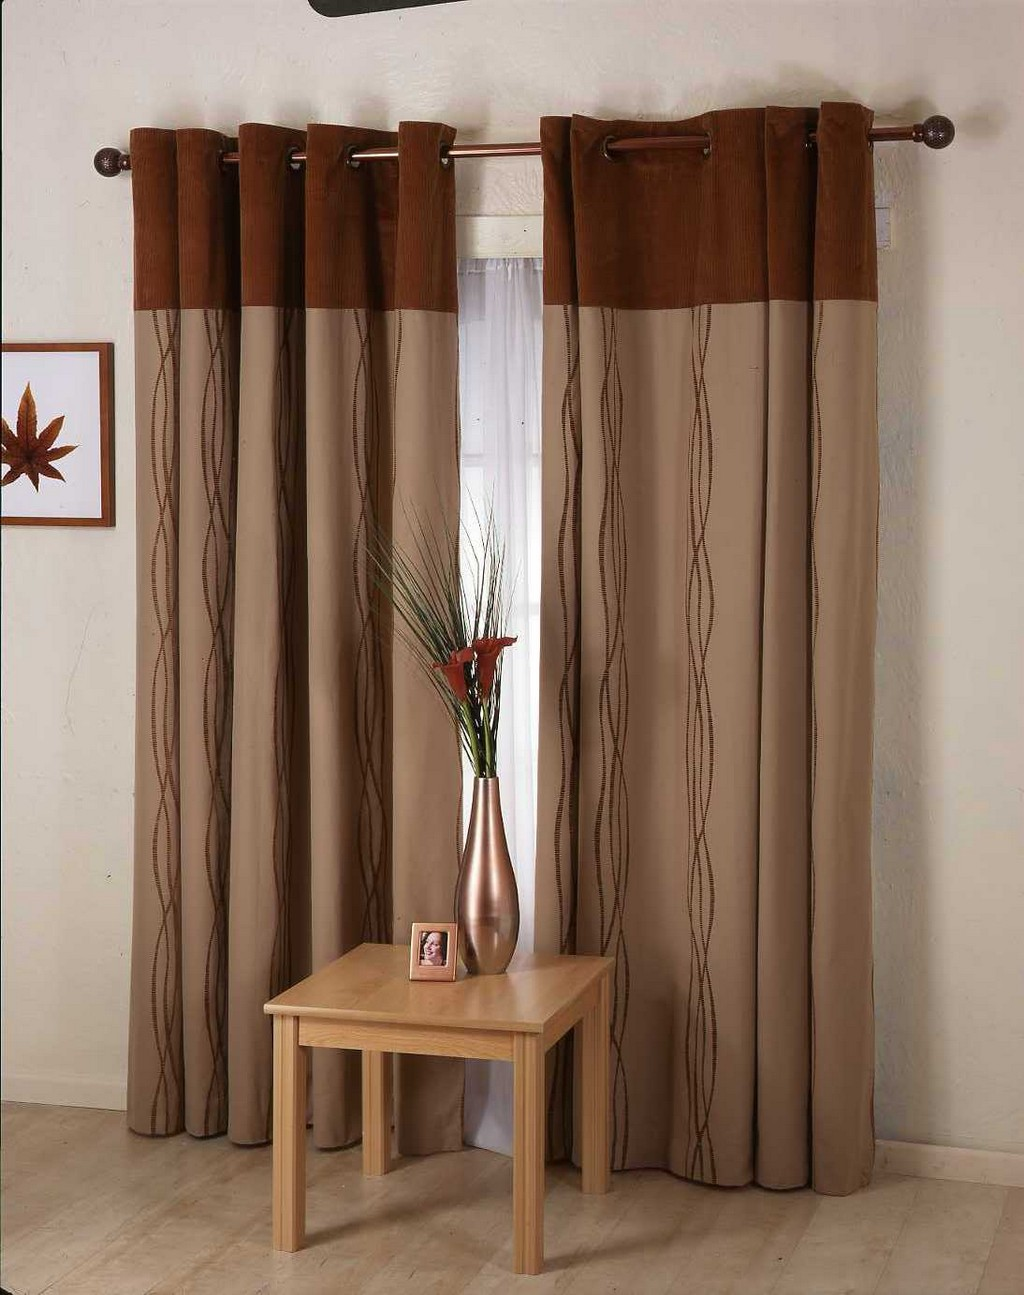 thermal drapes, bedroom drapes, drapes lot, dupioni silk drapes